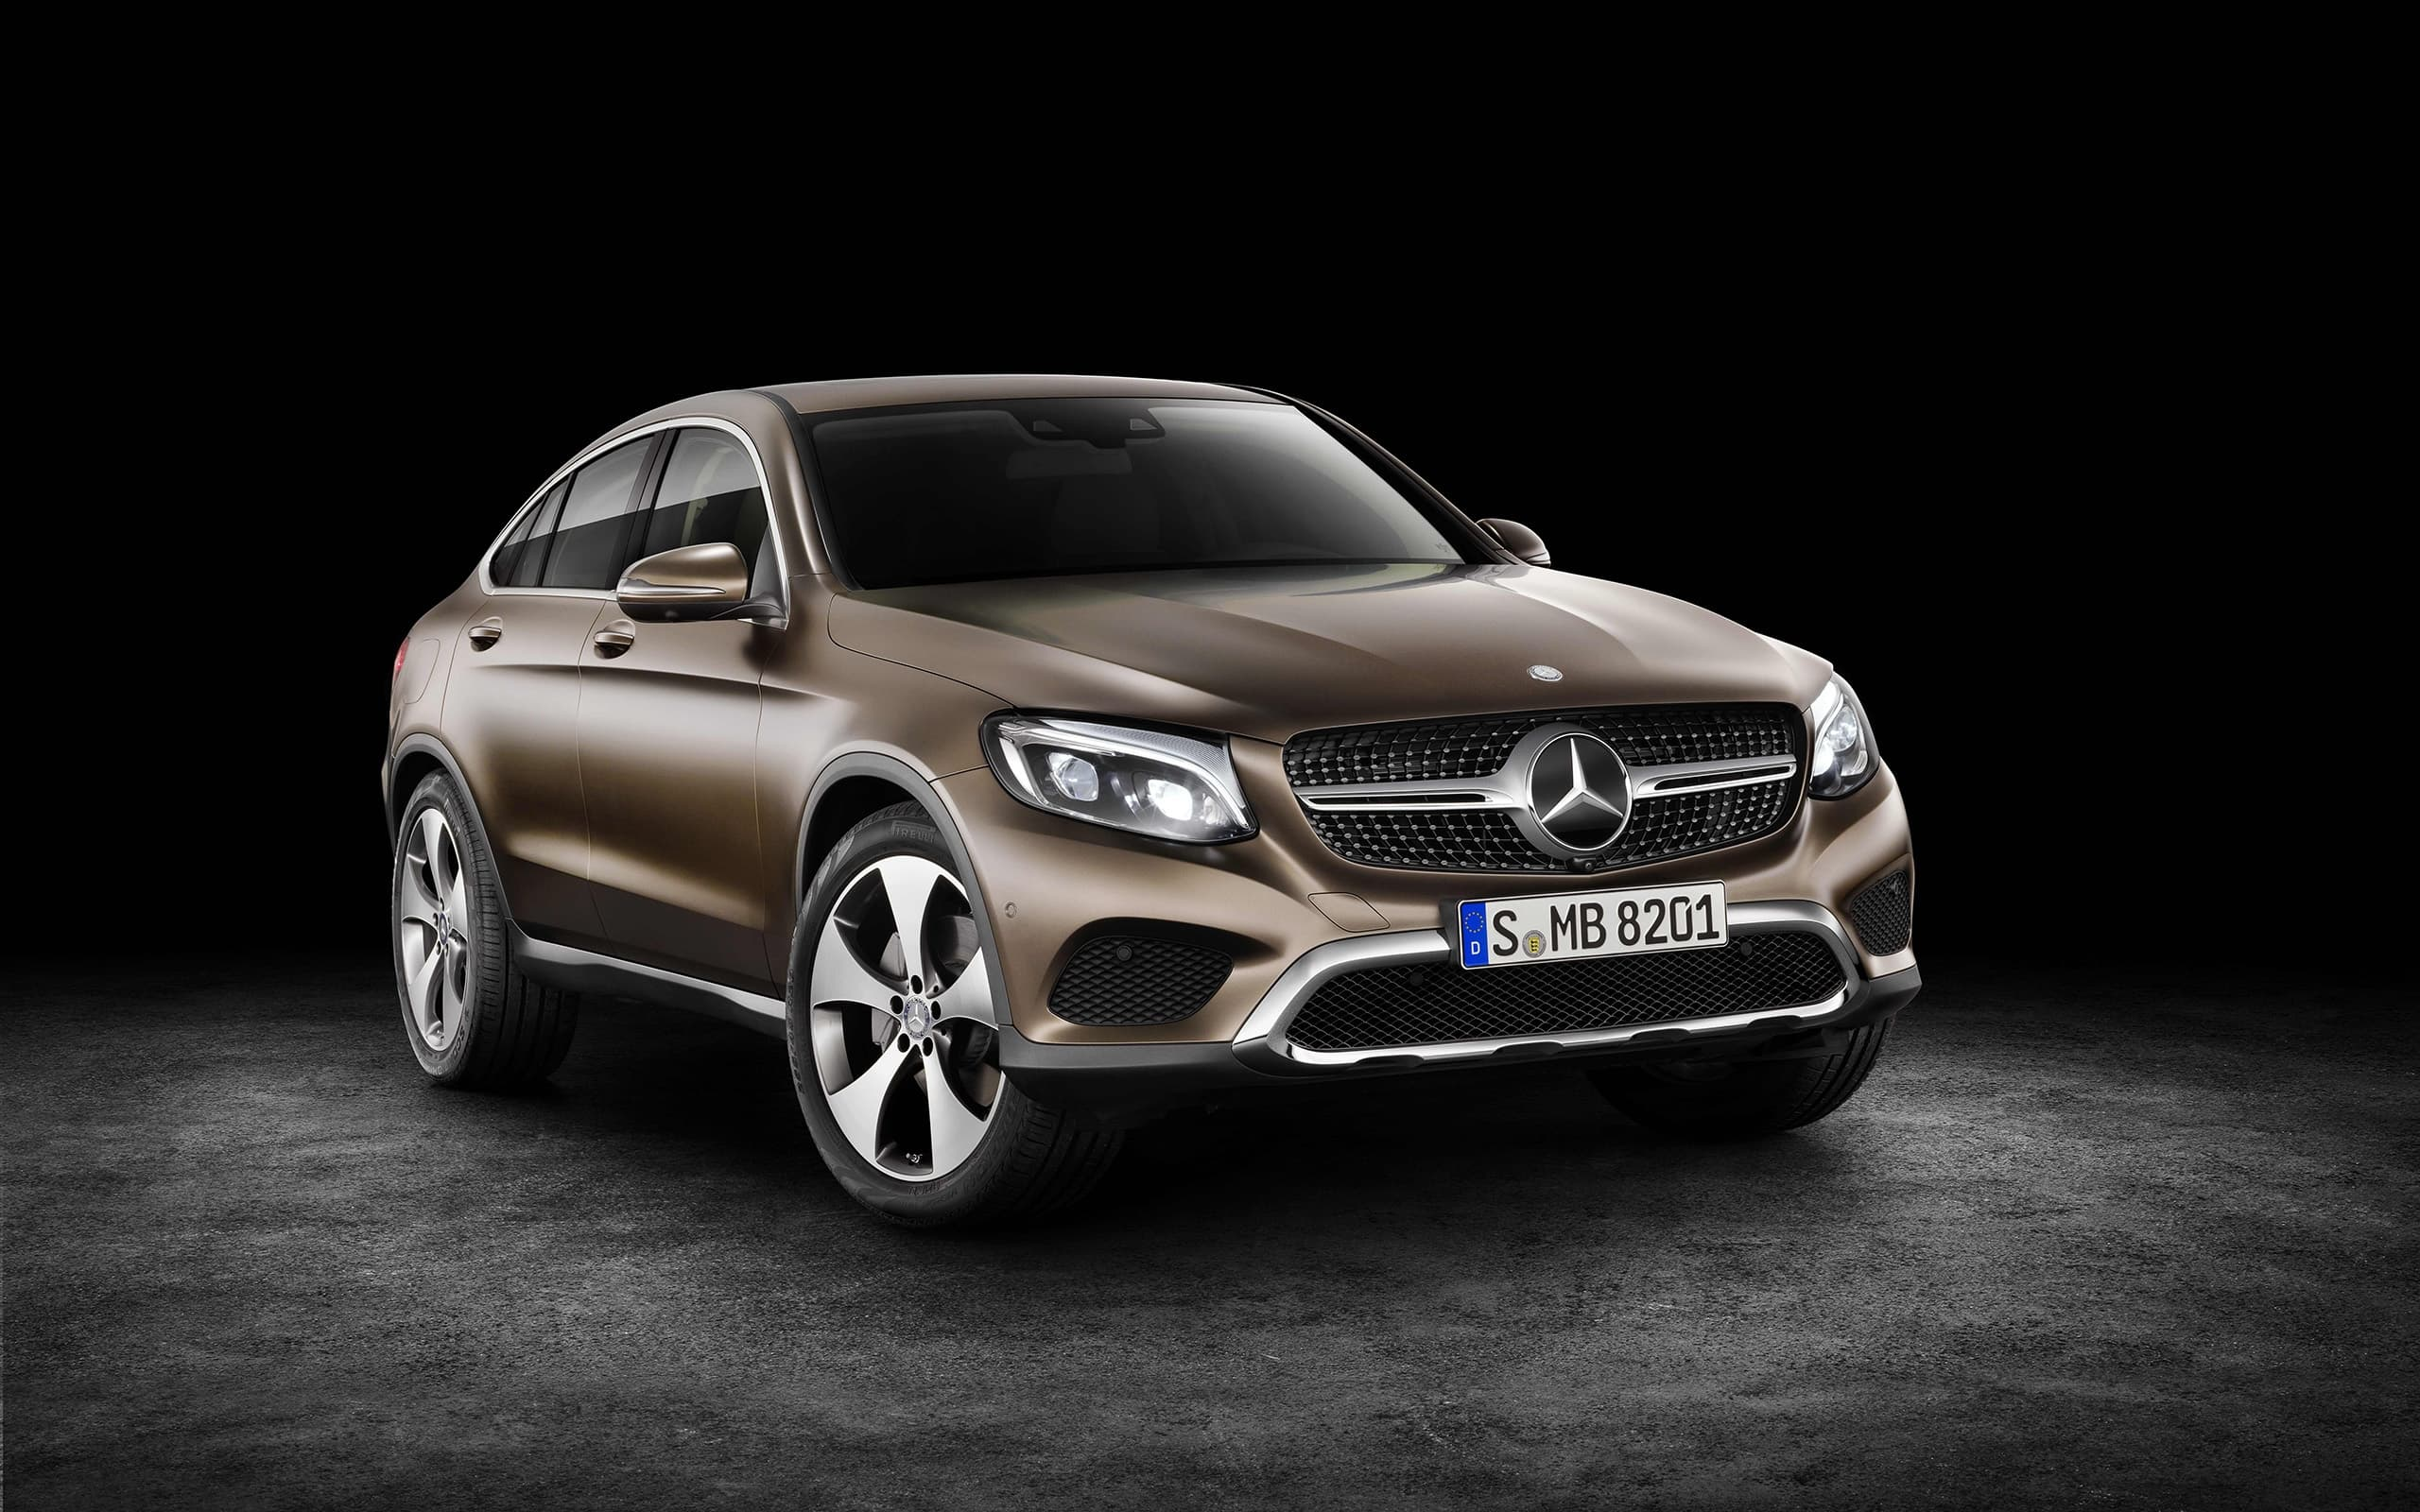 2016 Mercedes-Benz GLC Coupe front HD Wallpaper for Desktop